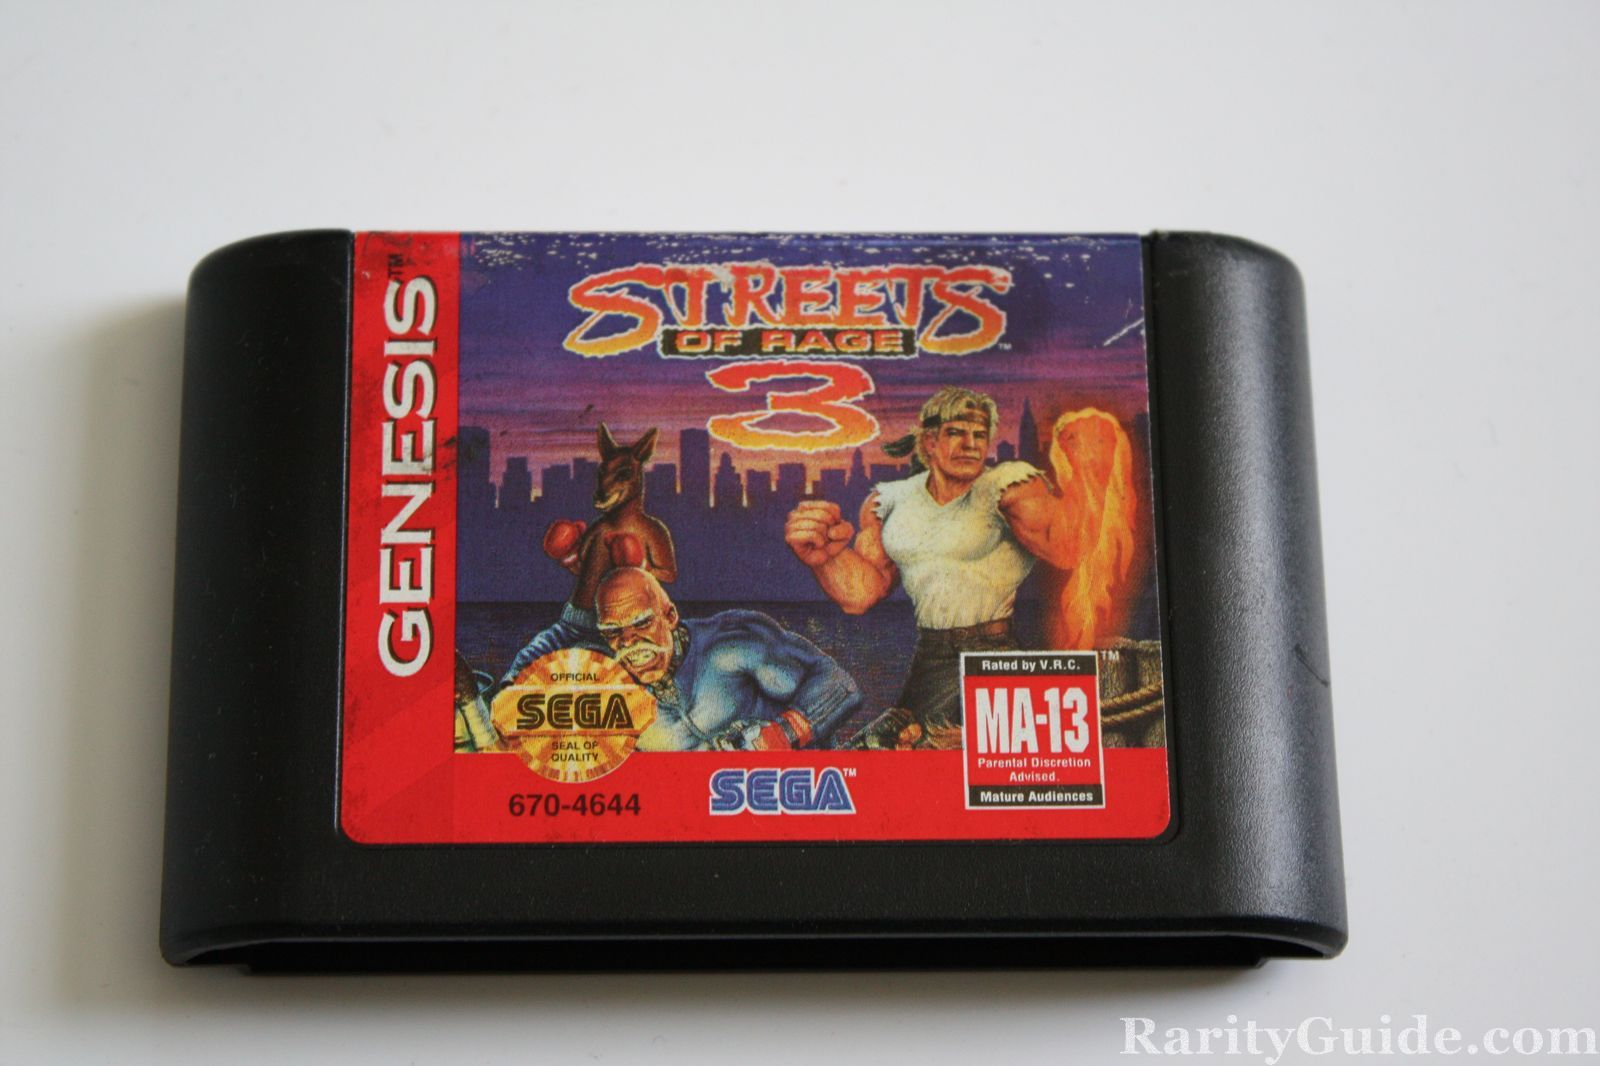 Sega Genesis Streets of Rage 3 Video Game Cartridge